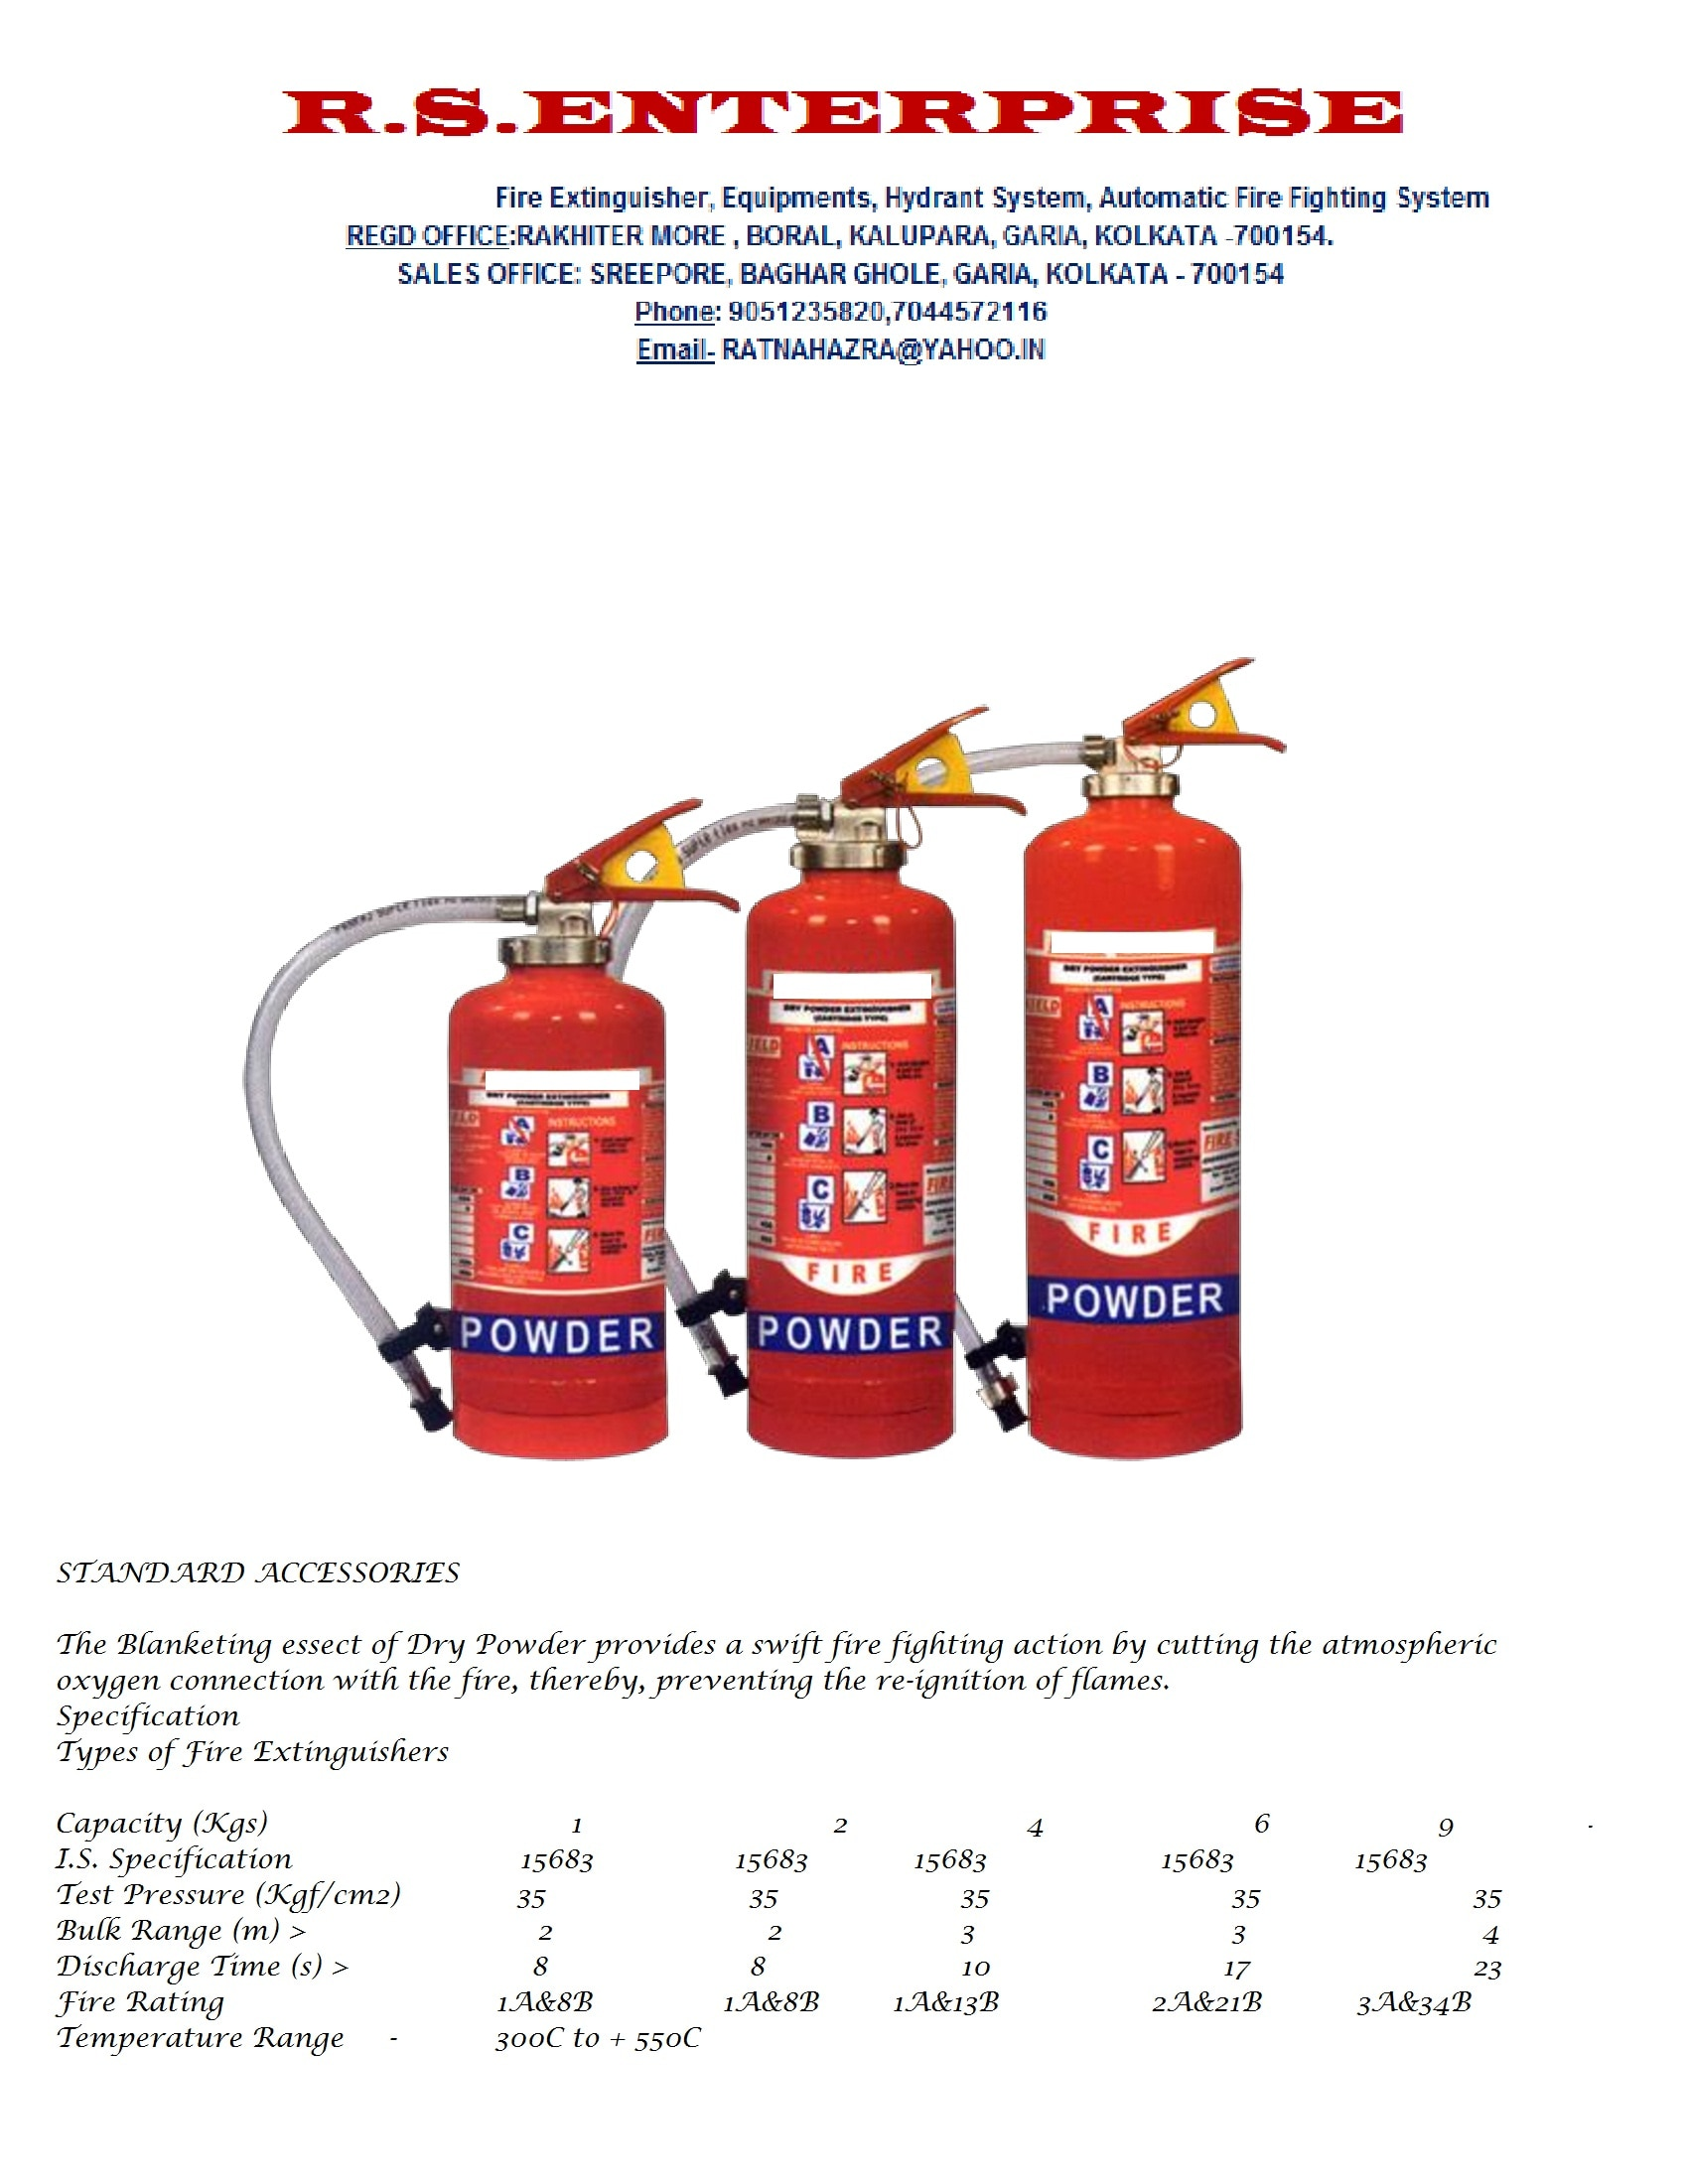 A fire extinguisher is an active fire protection device used to extinguish or control small fires, often in emergency situations. It is not intended for use on an out-of-control fire, such as one which has reached the ceiling, endangers the user (i.e., no escape route, smoke, explosion hazard, etc.), or otherwise requires the expertise of a fire department. Typically, a fire extinguisher consists of a hand-held cylindrical pressure vessel containing an agent which can be discharged to extinguish a fire. Fire extinguishers manufactured with non-cylindrical pressure vessels also exist, but are less common.   A stored-pressure fire extinguisher made by Oval Brand Fire Products In the United States, fire extinguishers in all buildings other than houses are generally required to be serviced and inspected by a fire protection service company at least annually. Some jurisdictions require more frequent service for fire extinguishers. The servicer places a tag on the extinguisher to indicate the type of service performed (annual inspection, recharge, new fire extinguisher).   A British fire extinguisher with ID sign, call point and fire action sign There are two main types of fire extinguishers: stored-pressure and cartridge-operated. In stored pressure units, the expellant is stored in the same chamber as the firefighting agent itself. Depending on the agent used, different propellants are used. With dry chemical extinguishers, nitrogen is typically used; water and foam extinguishers typically use air. Stored pressure fire extinguishers are the most common type. Cartridge-operated extinguishers contain the expellant gas in a separate cartridge that is punctured prior to discharge, exposing the propellant to the extinguishing agent. This type is not as common, used primarily in areas such as industrial facilities, where they receive higher-than-average use. They have the advantage of simple and prompt recharge, allowing an operator to discharge the extinguisher, recharge it,